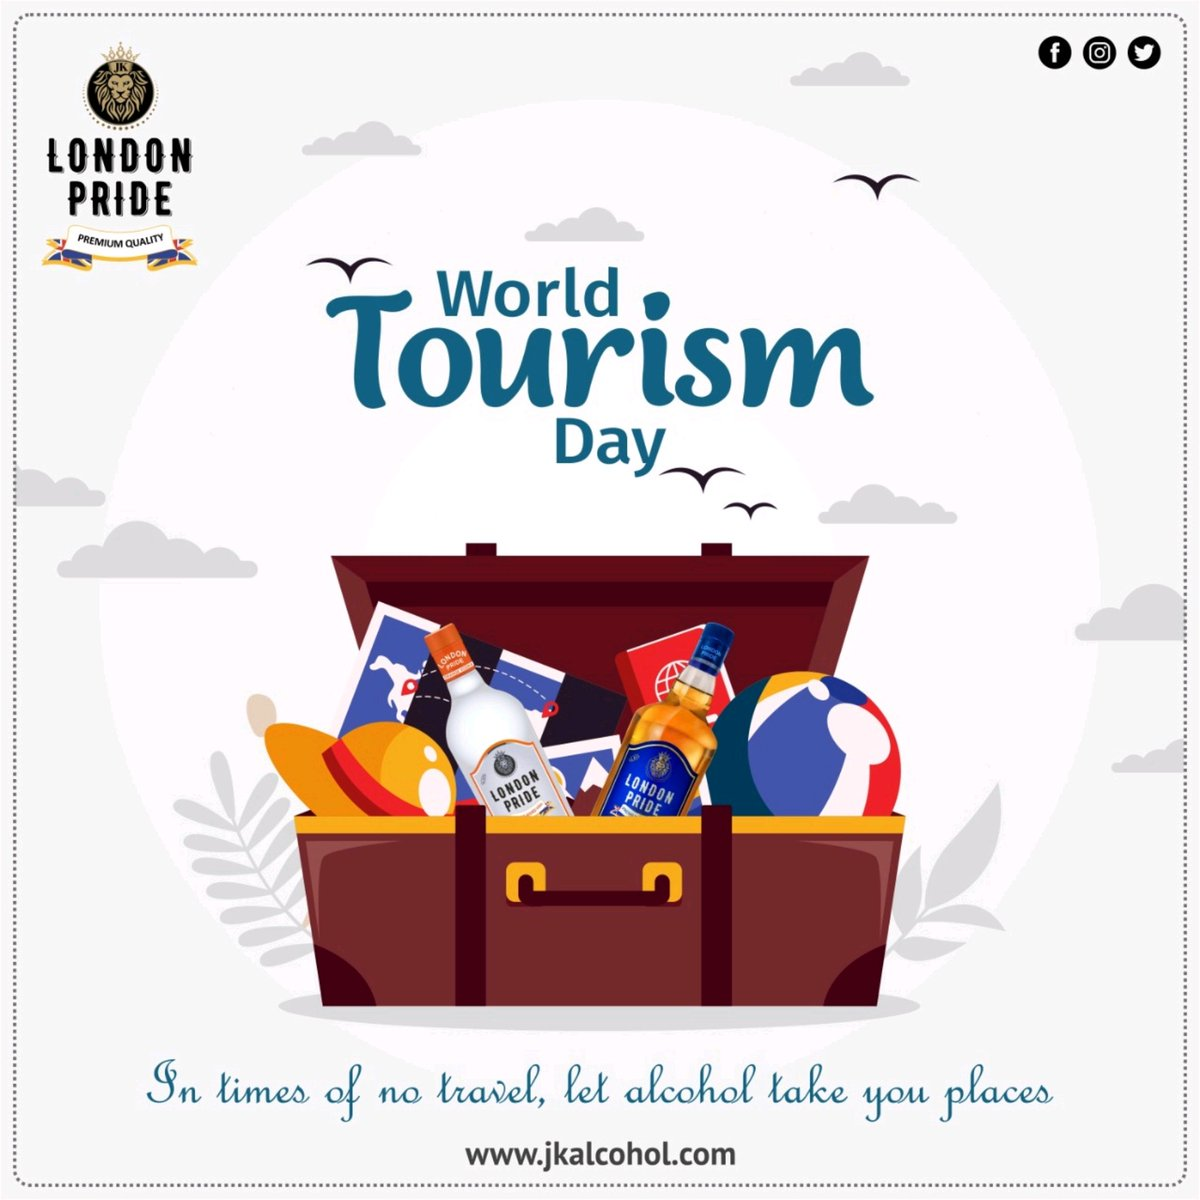 Even though this pandemic has halted travel but you don't need to go the distance to feel great because you have us! Happy World tourism day!  #WorldTourismDay #TourismDay #Tourism #Travel #Travelling #Worldtour #jkalcohol #Jkgroup #JkEnterprises #londonpride #Londonreserve https://t.co/MBAXG6UIzt